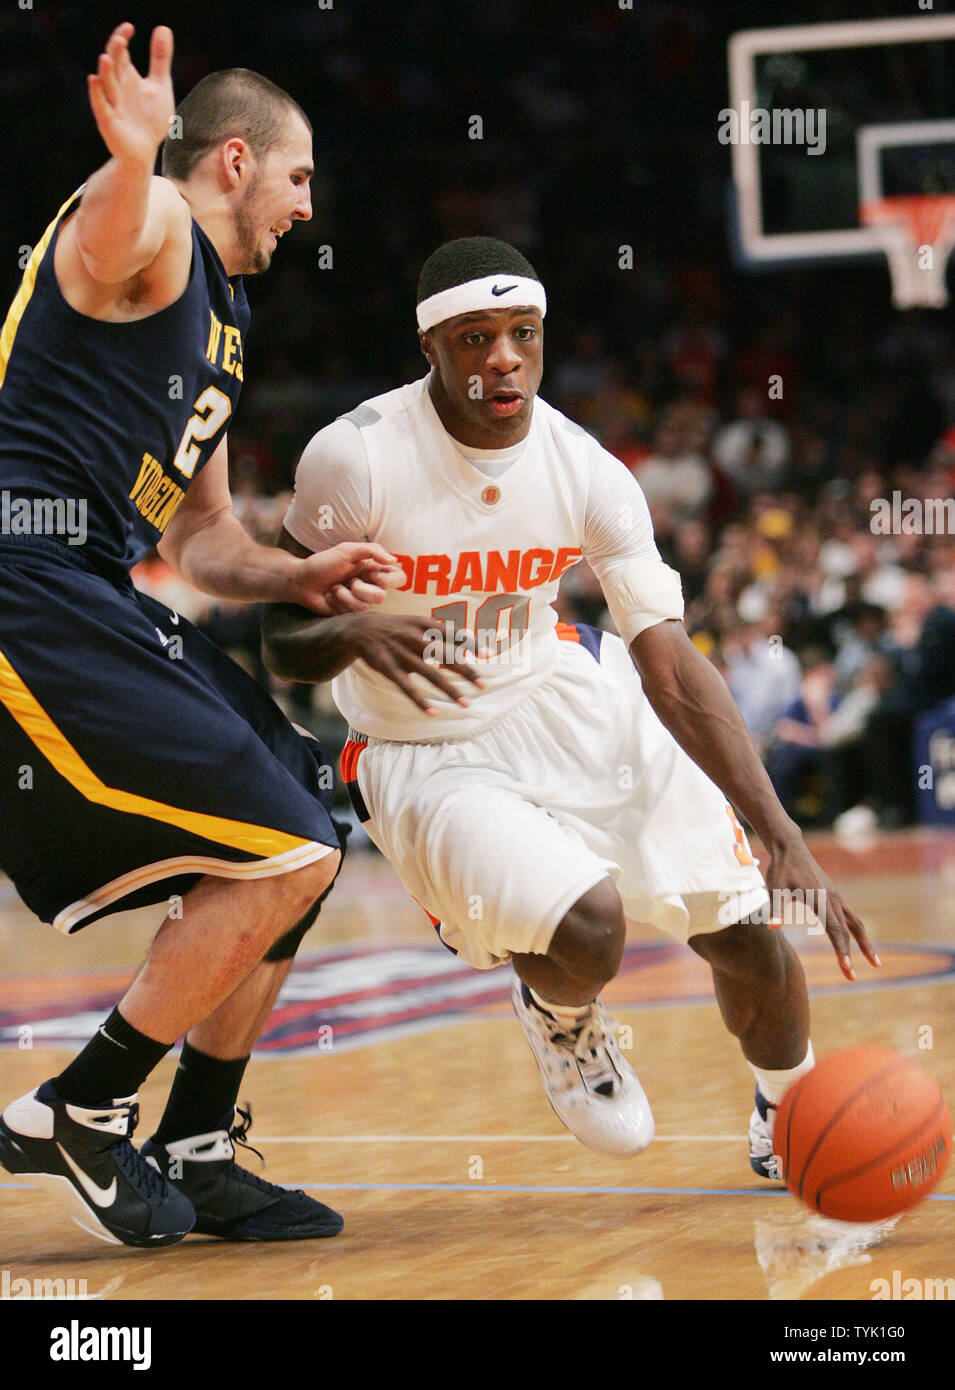 Syracuse S Jonny Flynn Drives Past Cam Thoroughman Of West